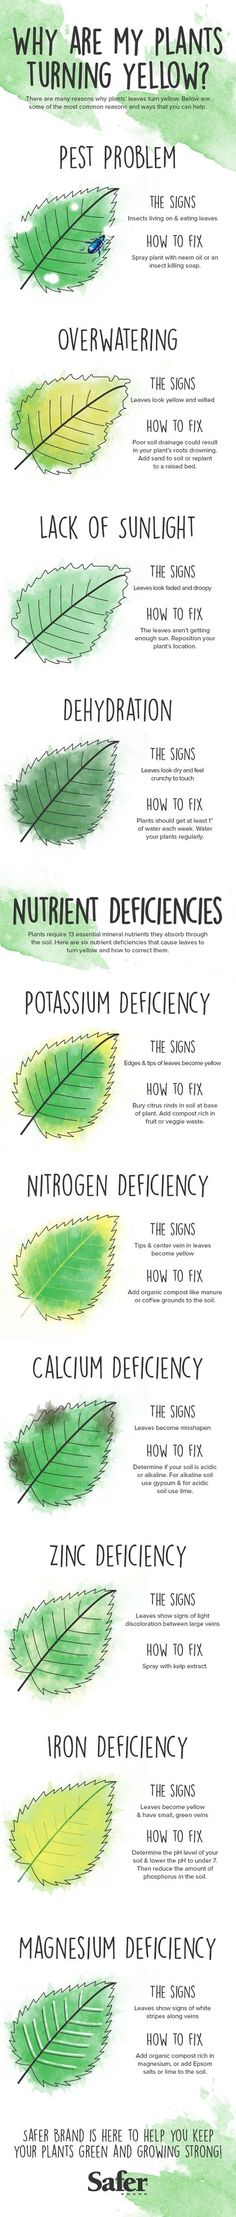 Troubles with your plants? Hopefully this infographic will help keep them perky and blooming